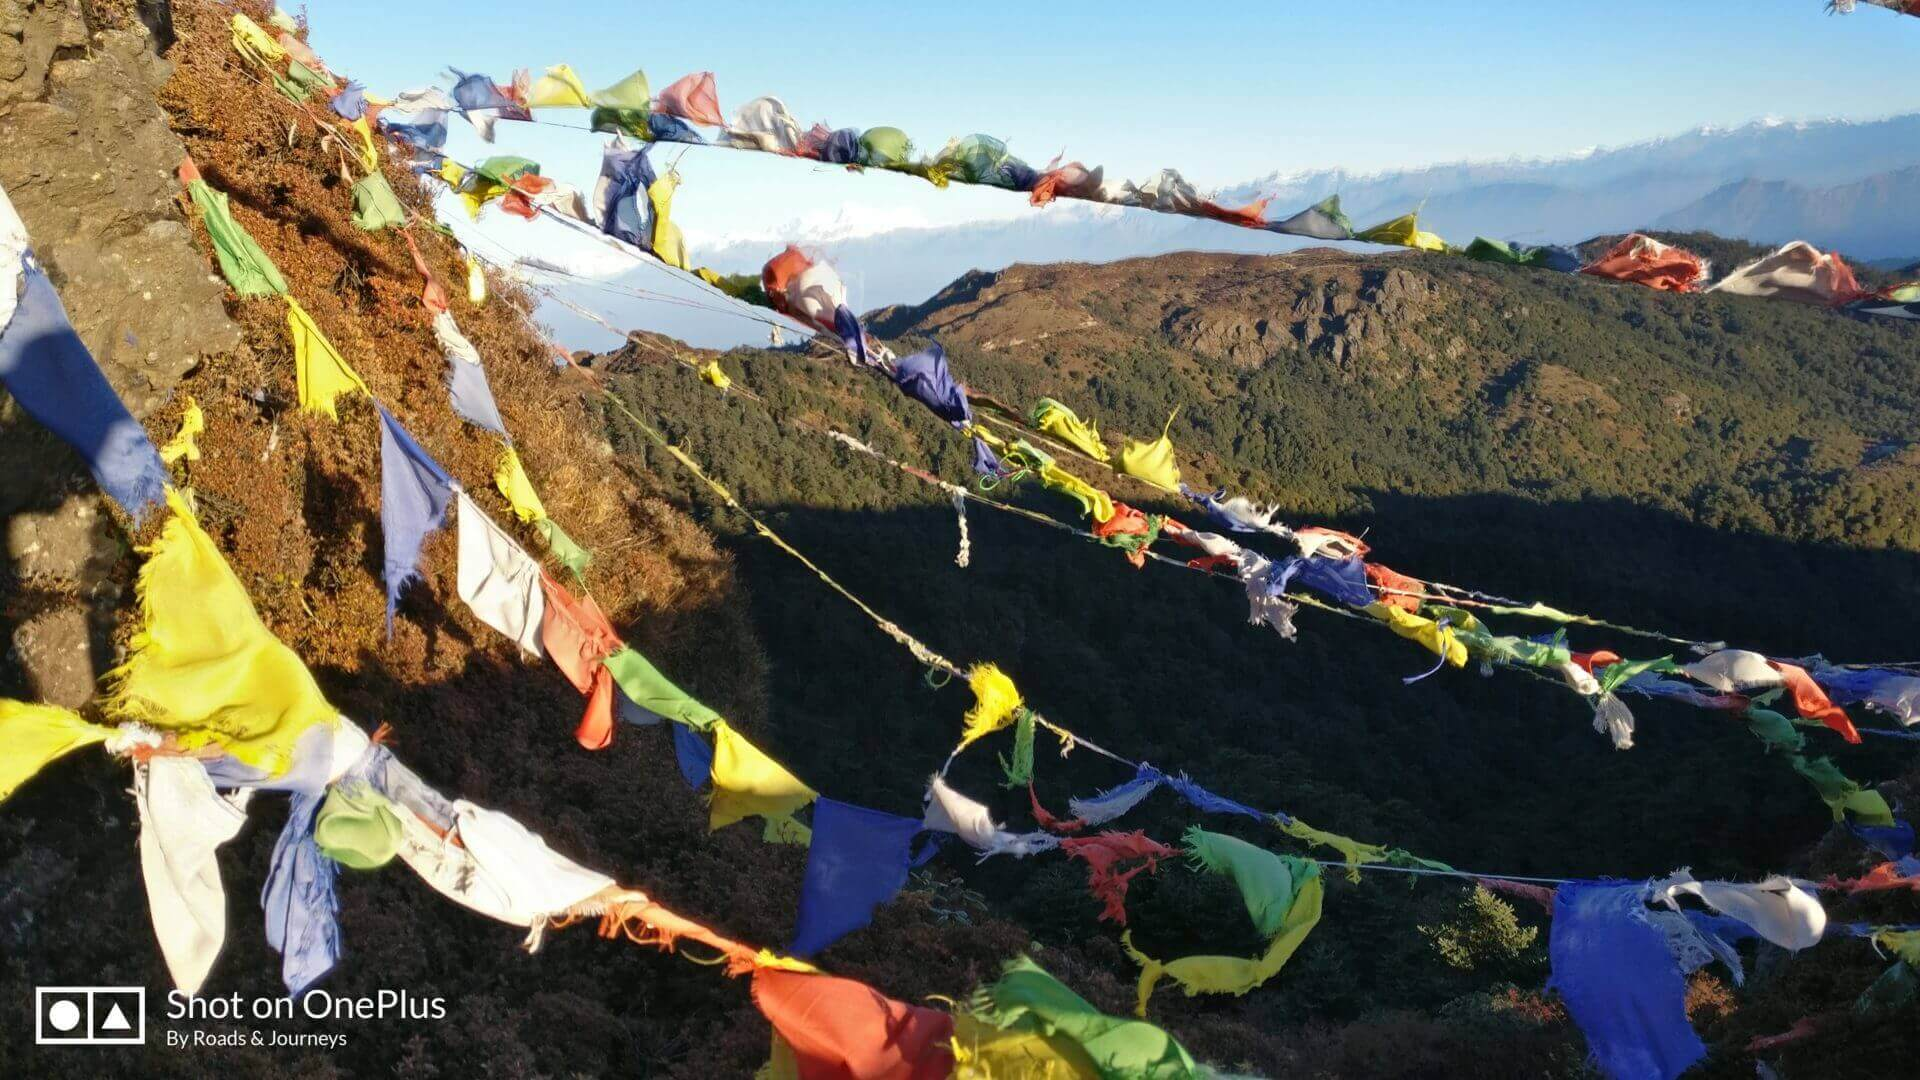 t's the only Indian trek where you can see Everest and Kanchenjunga.   Bagdogra